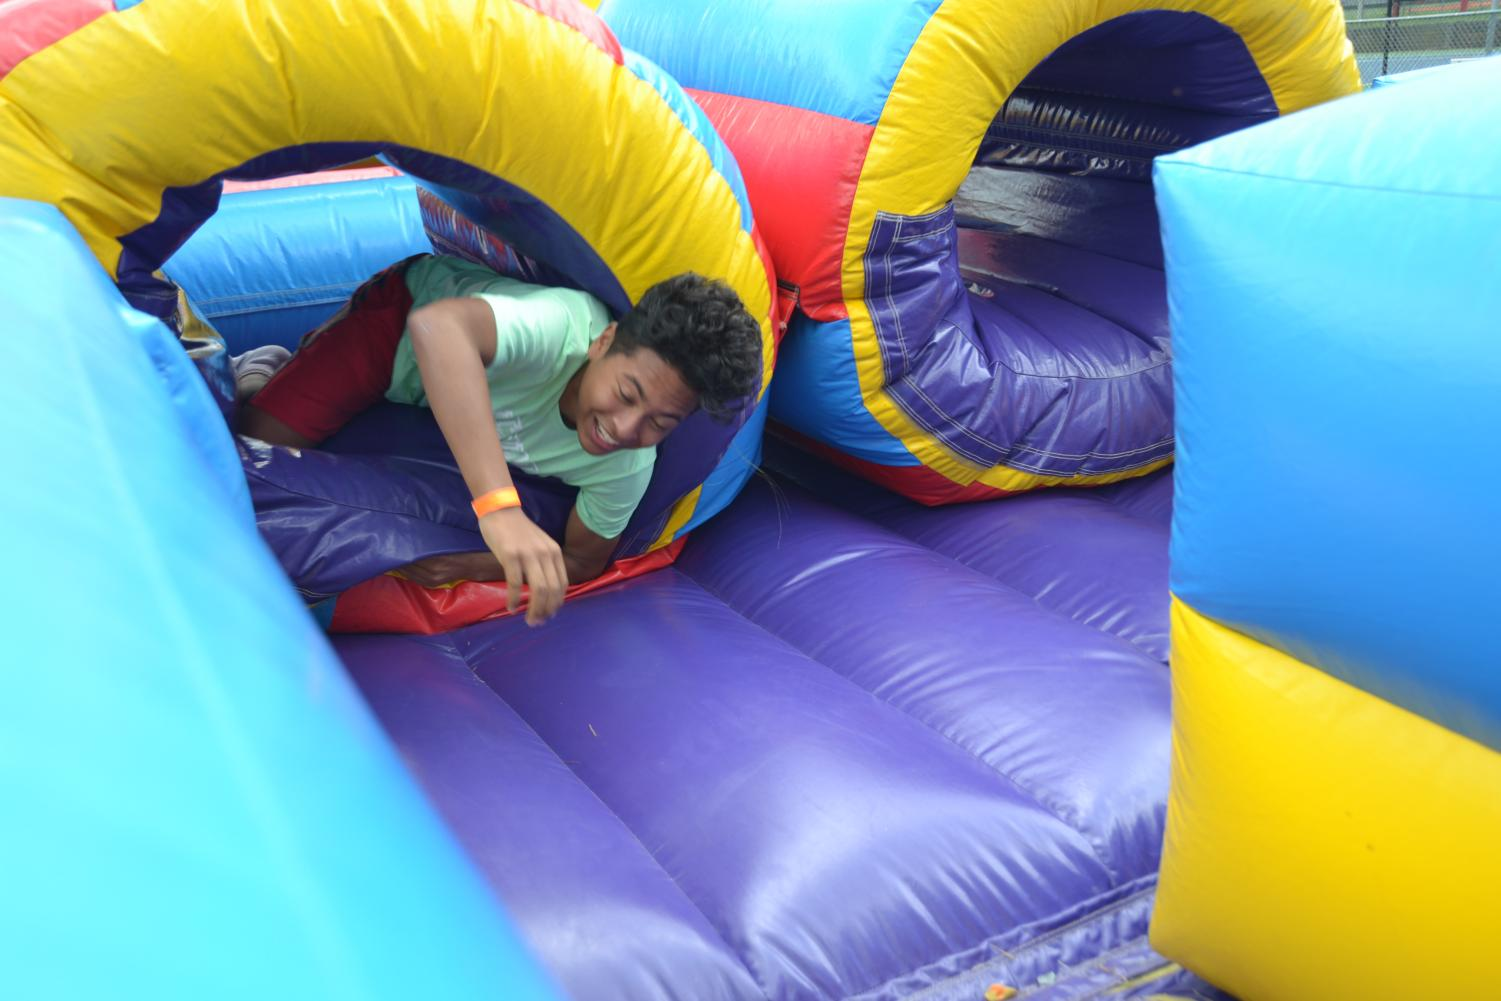 Junior Alessio Humerez attended the first AHS Summer Fest last school year. One of the many attractions of the festival are inflatable slides.